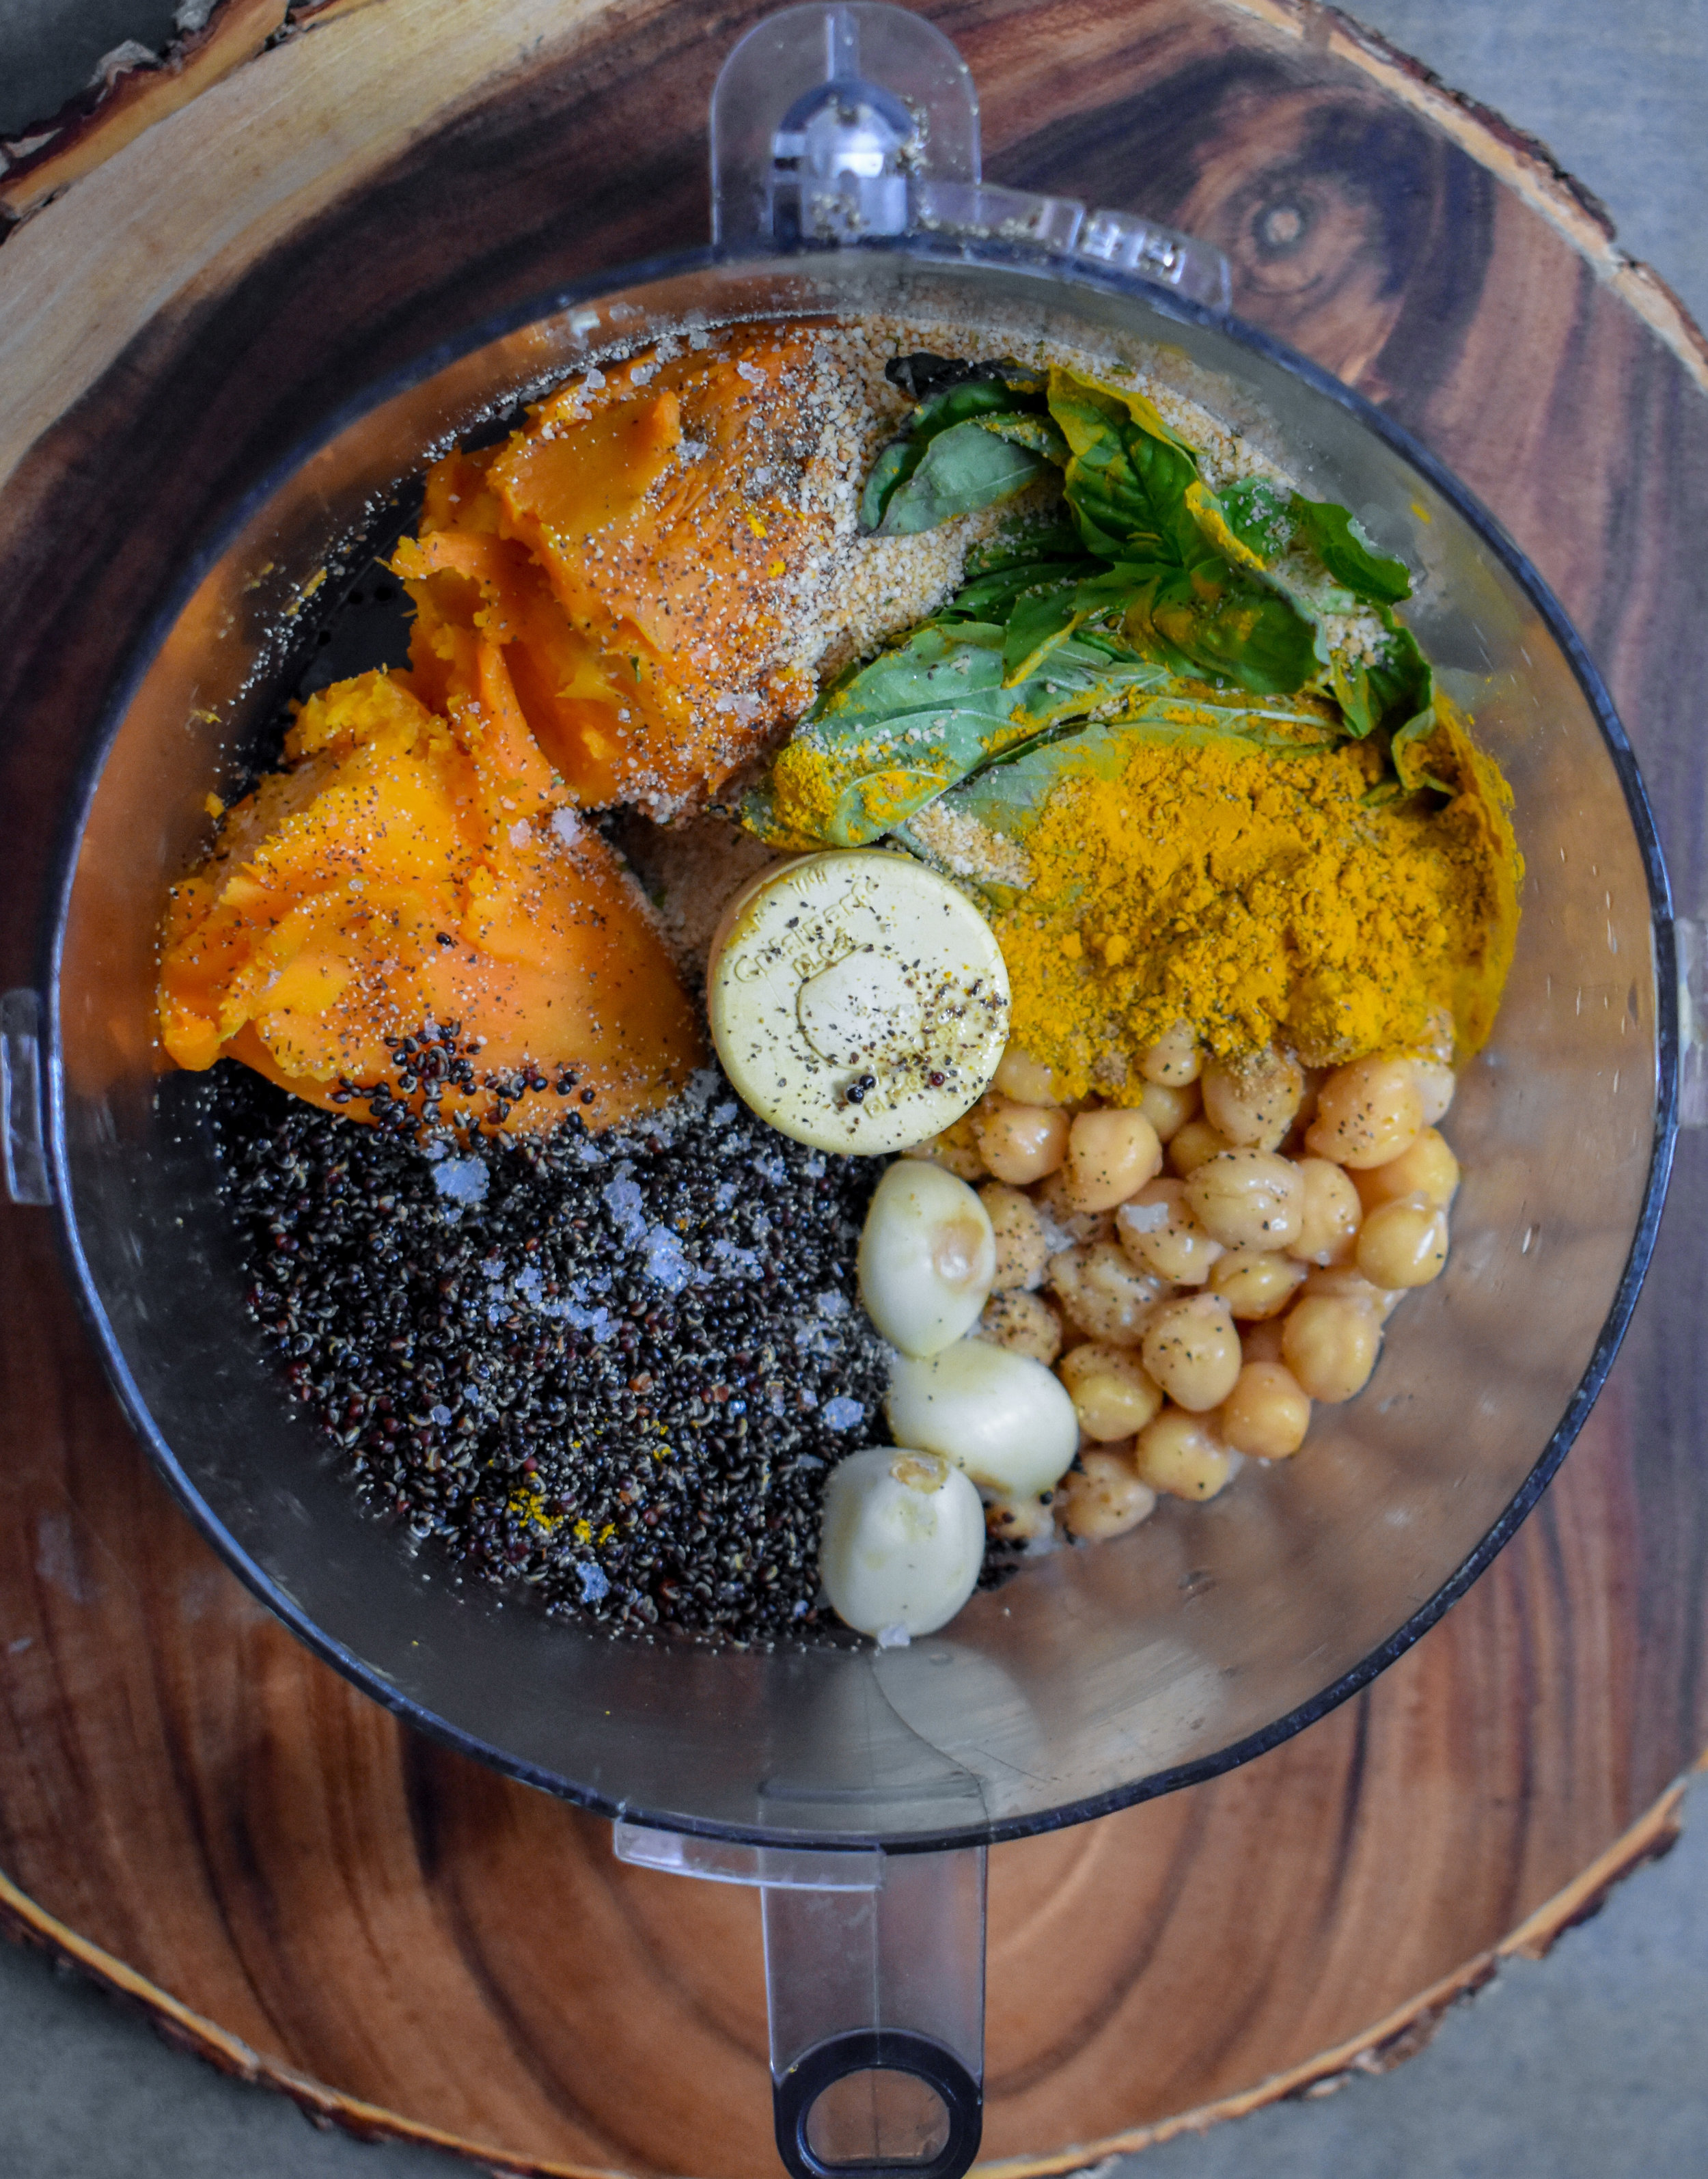 4. Once the sweet potato + quinoa are done, mix together all the ingredients for burger (including cooked onion + pepper) in a food processor (except AP flour) and pulse 8-10 times. Don't overmix it as you want some chunks of sweet potato to still exist.